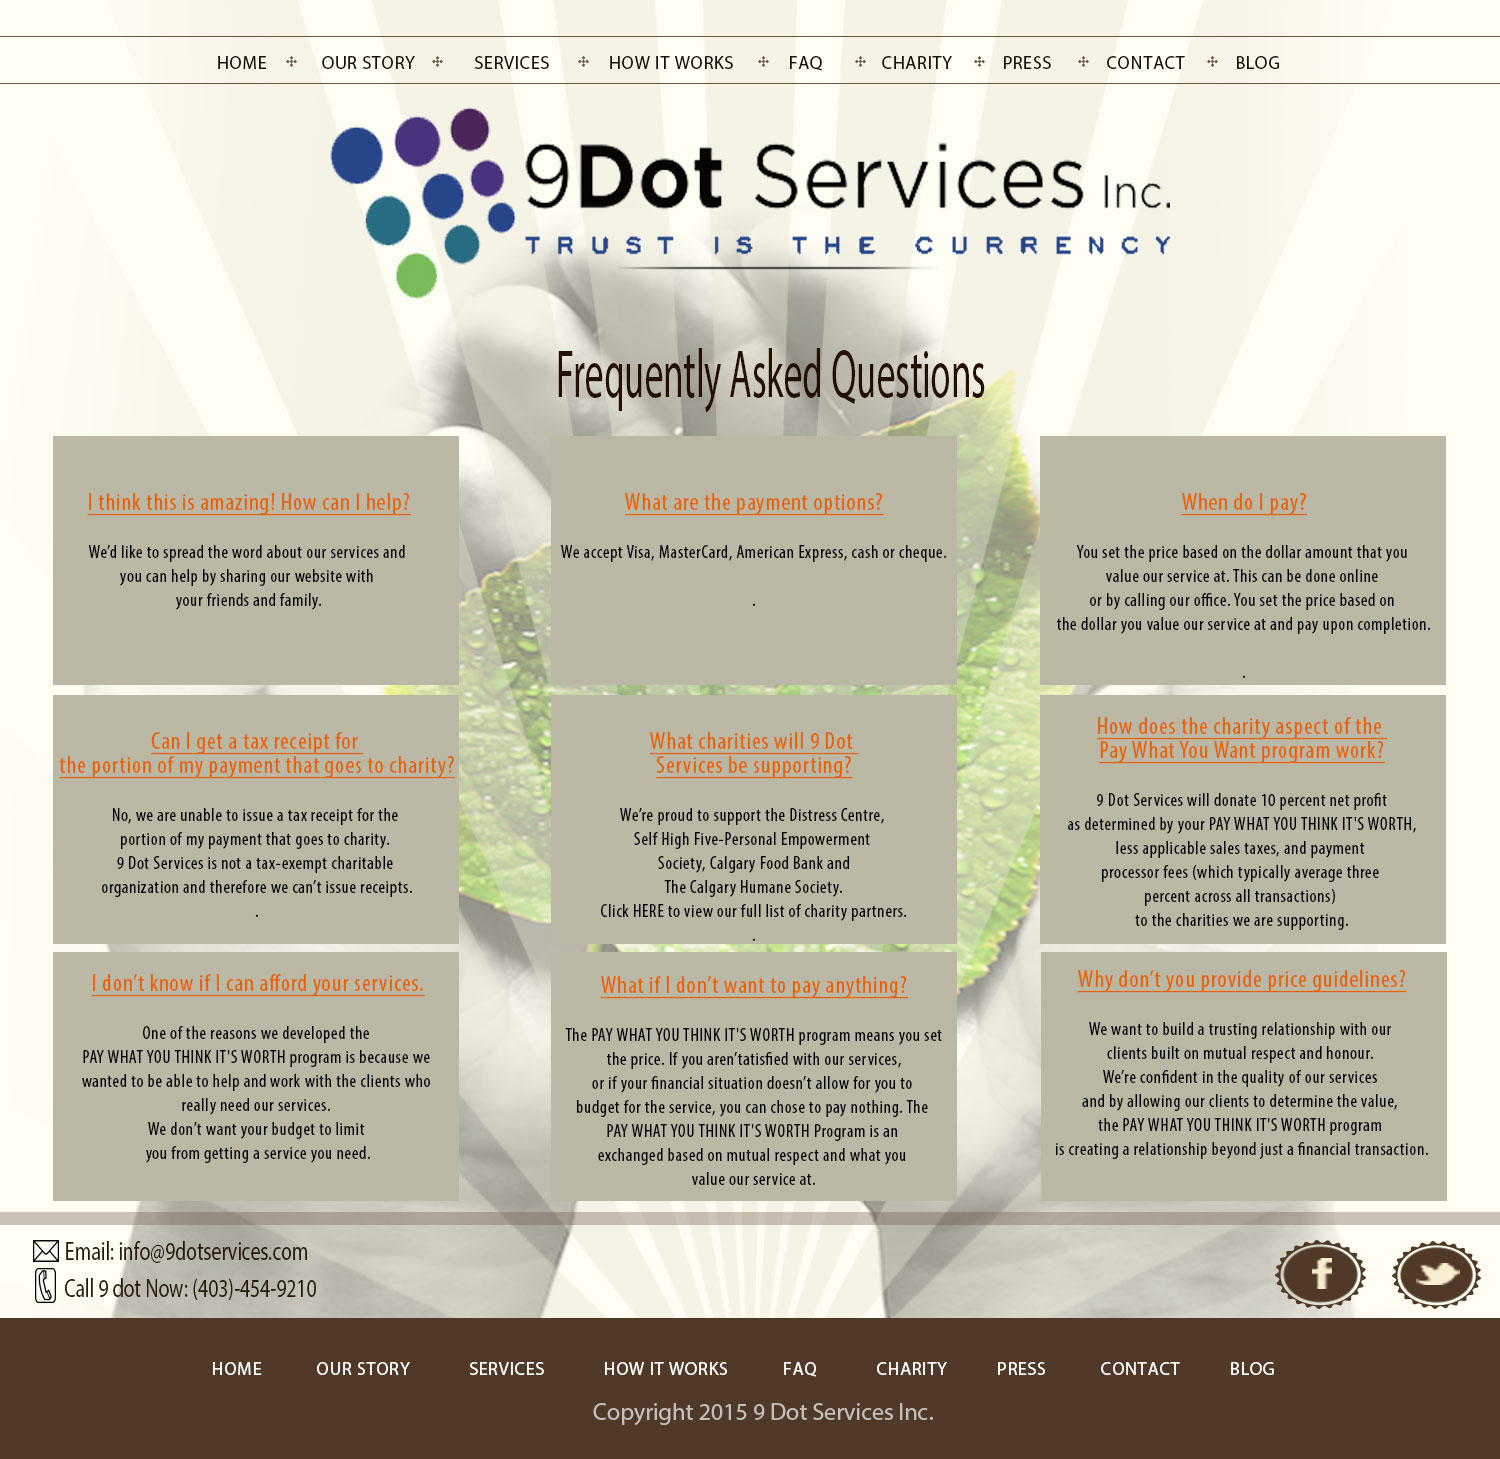 Upmarket Modern It Company Web Design For 9 Dot Services Inc By Hspyres Design 9273946